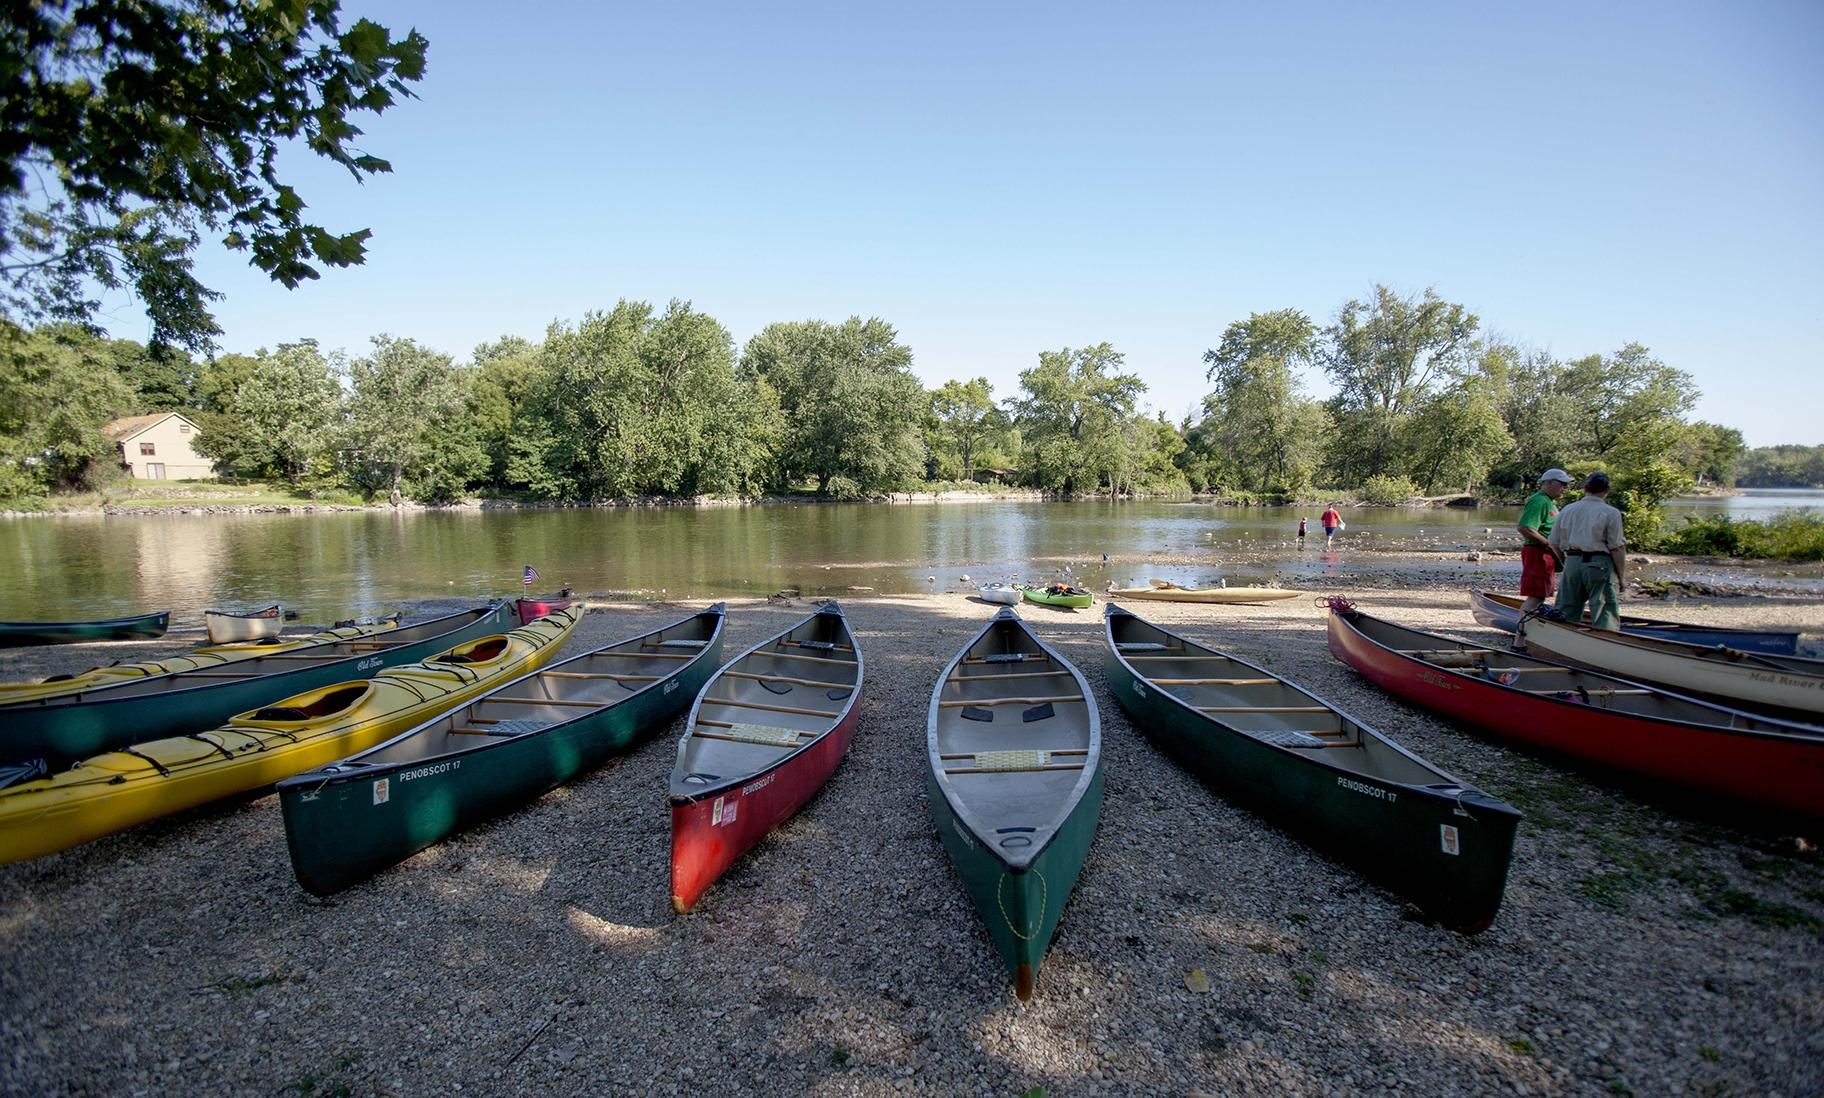 Canoes next to the Fox River (COD Newsroom / Flickr)